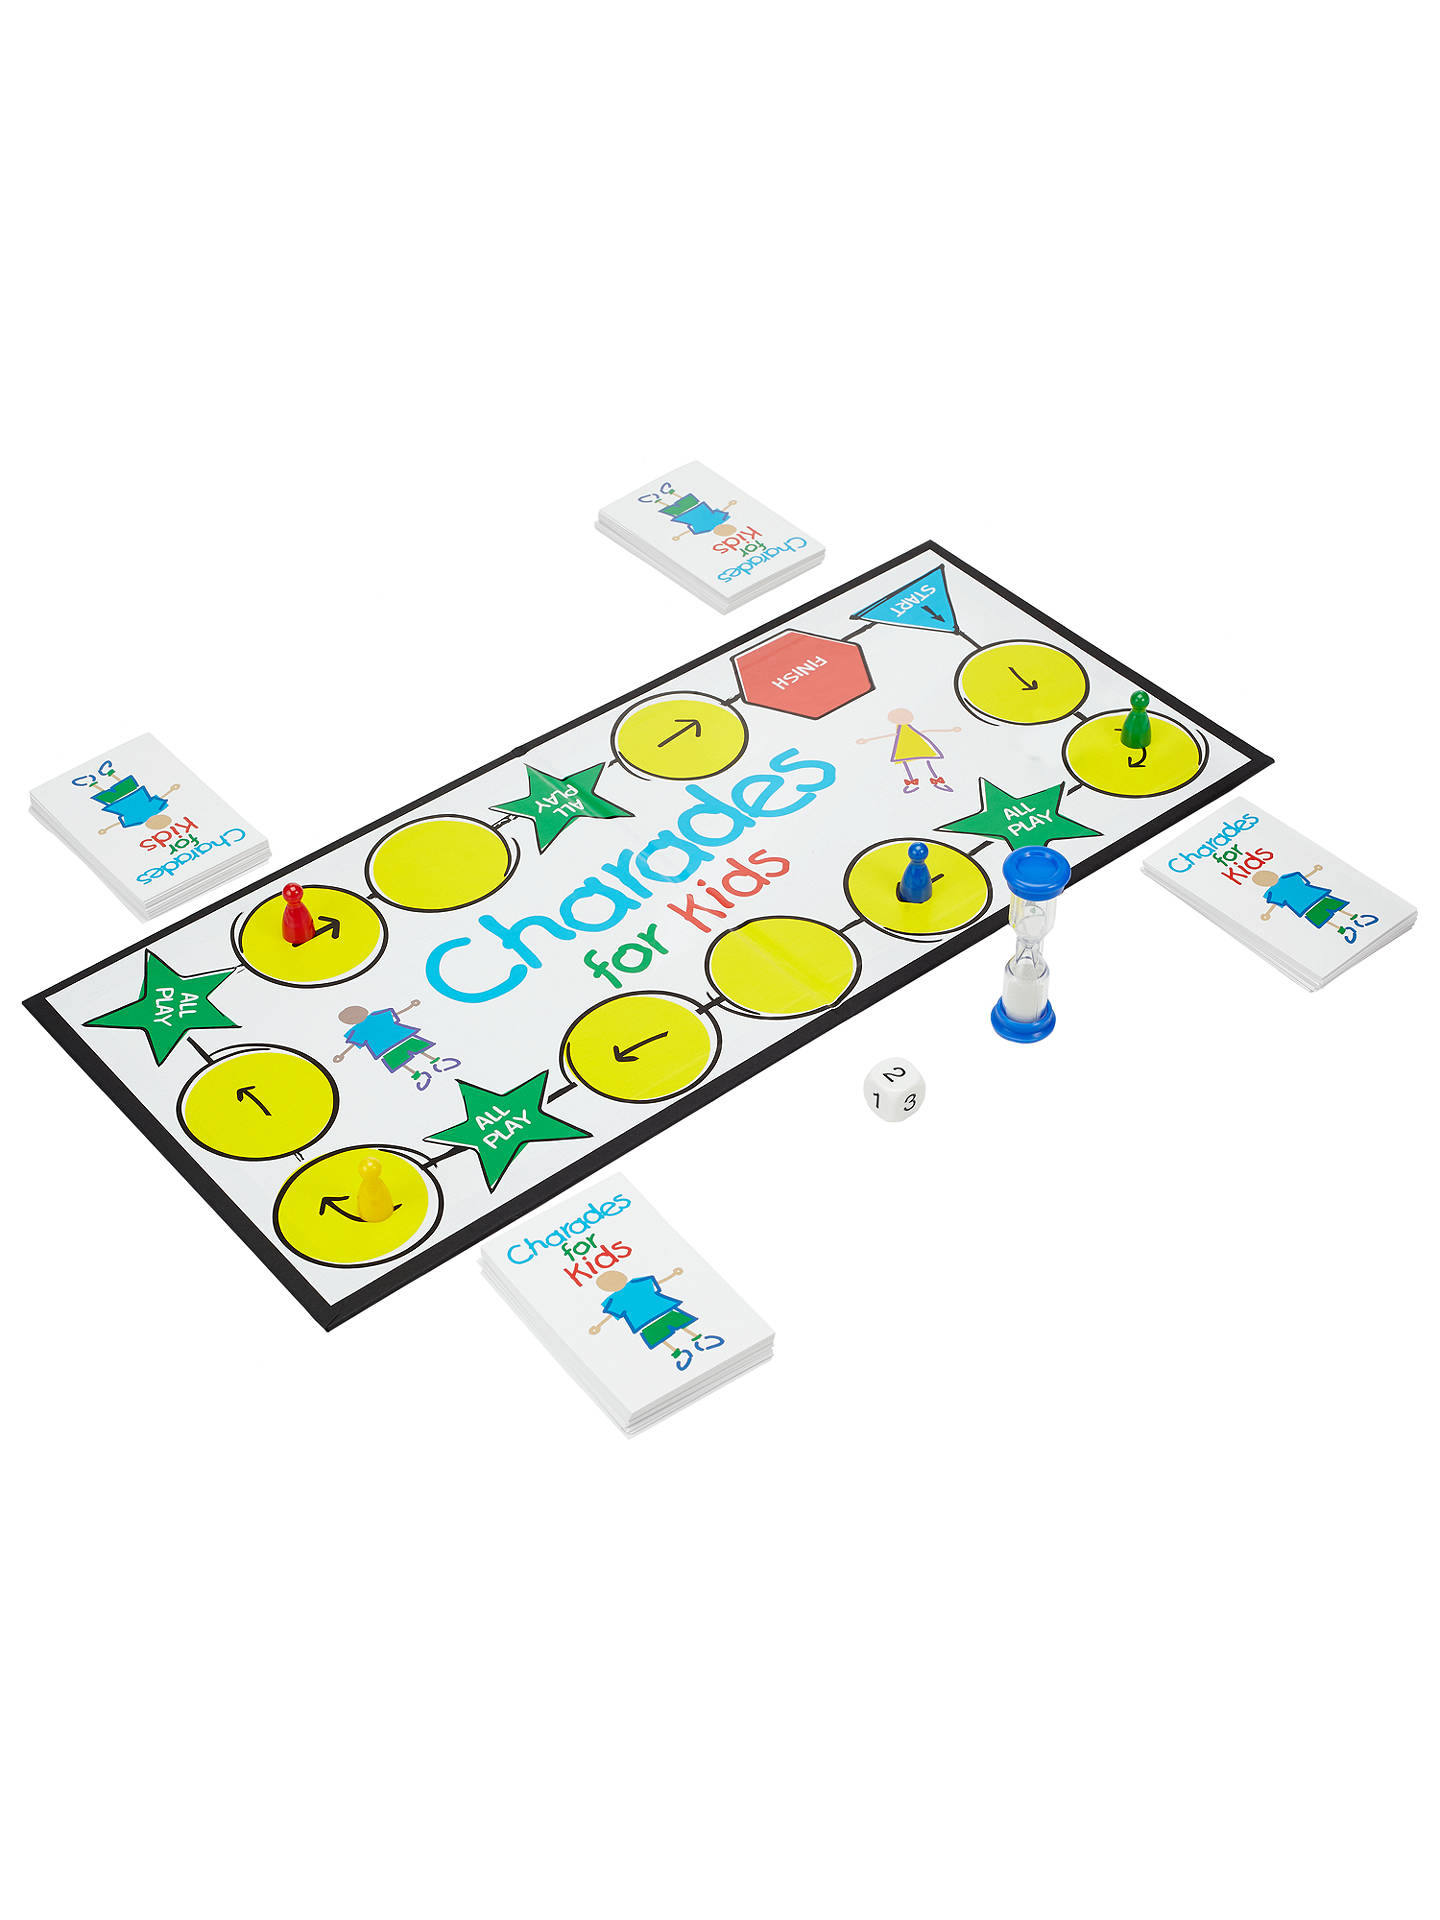 BuyCharades For Kids The Board Game Online at johnlewis.com